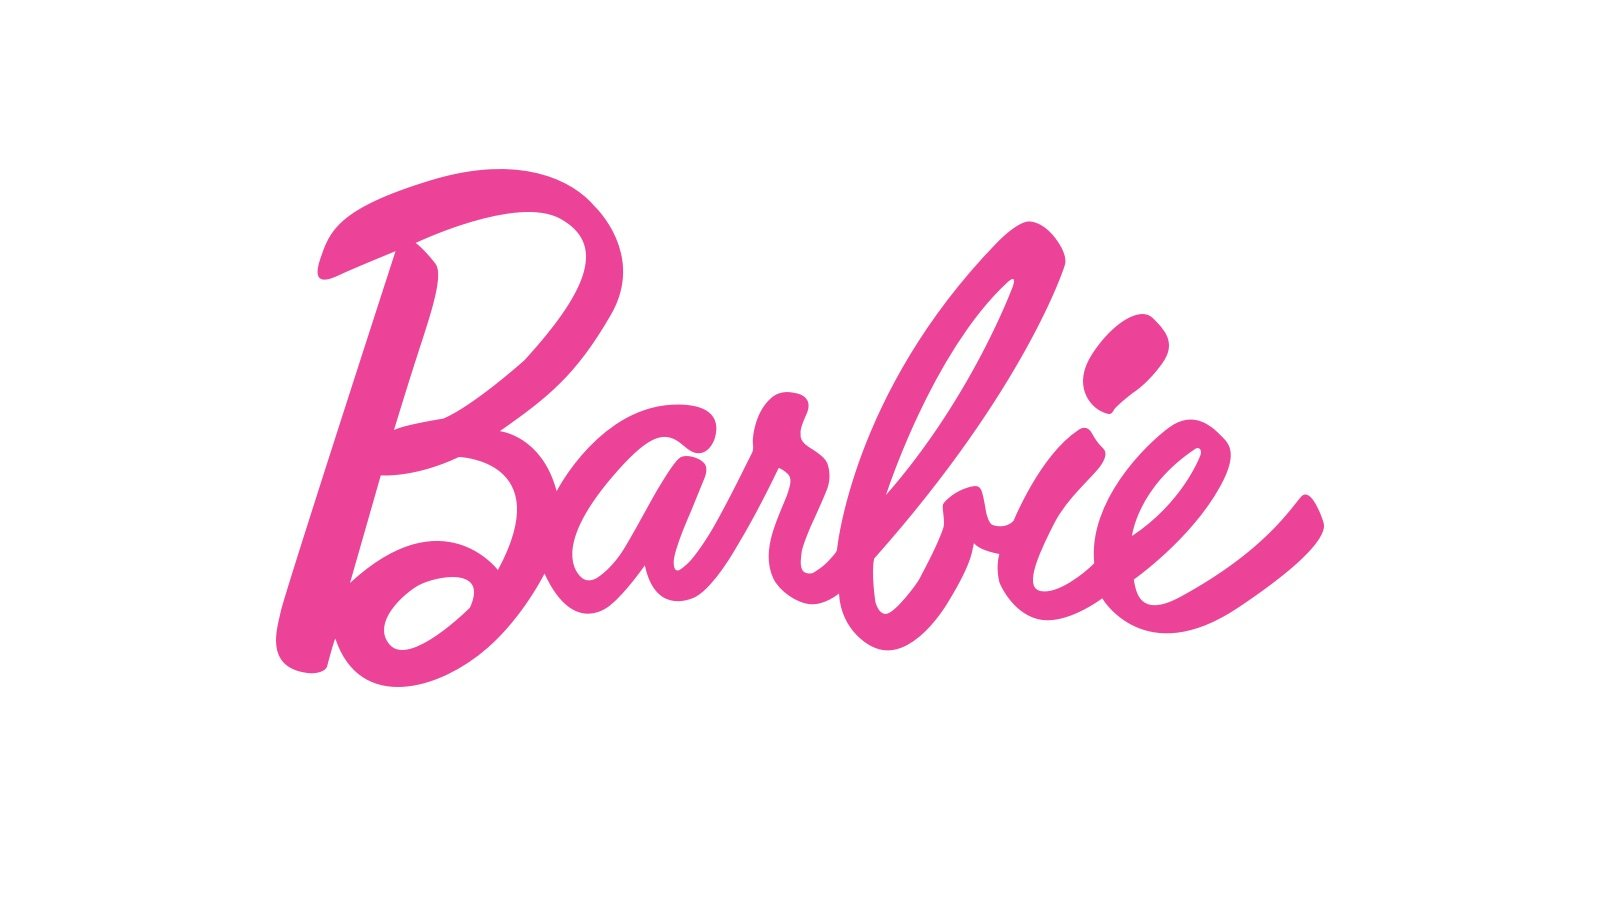 Pink Barbie logo